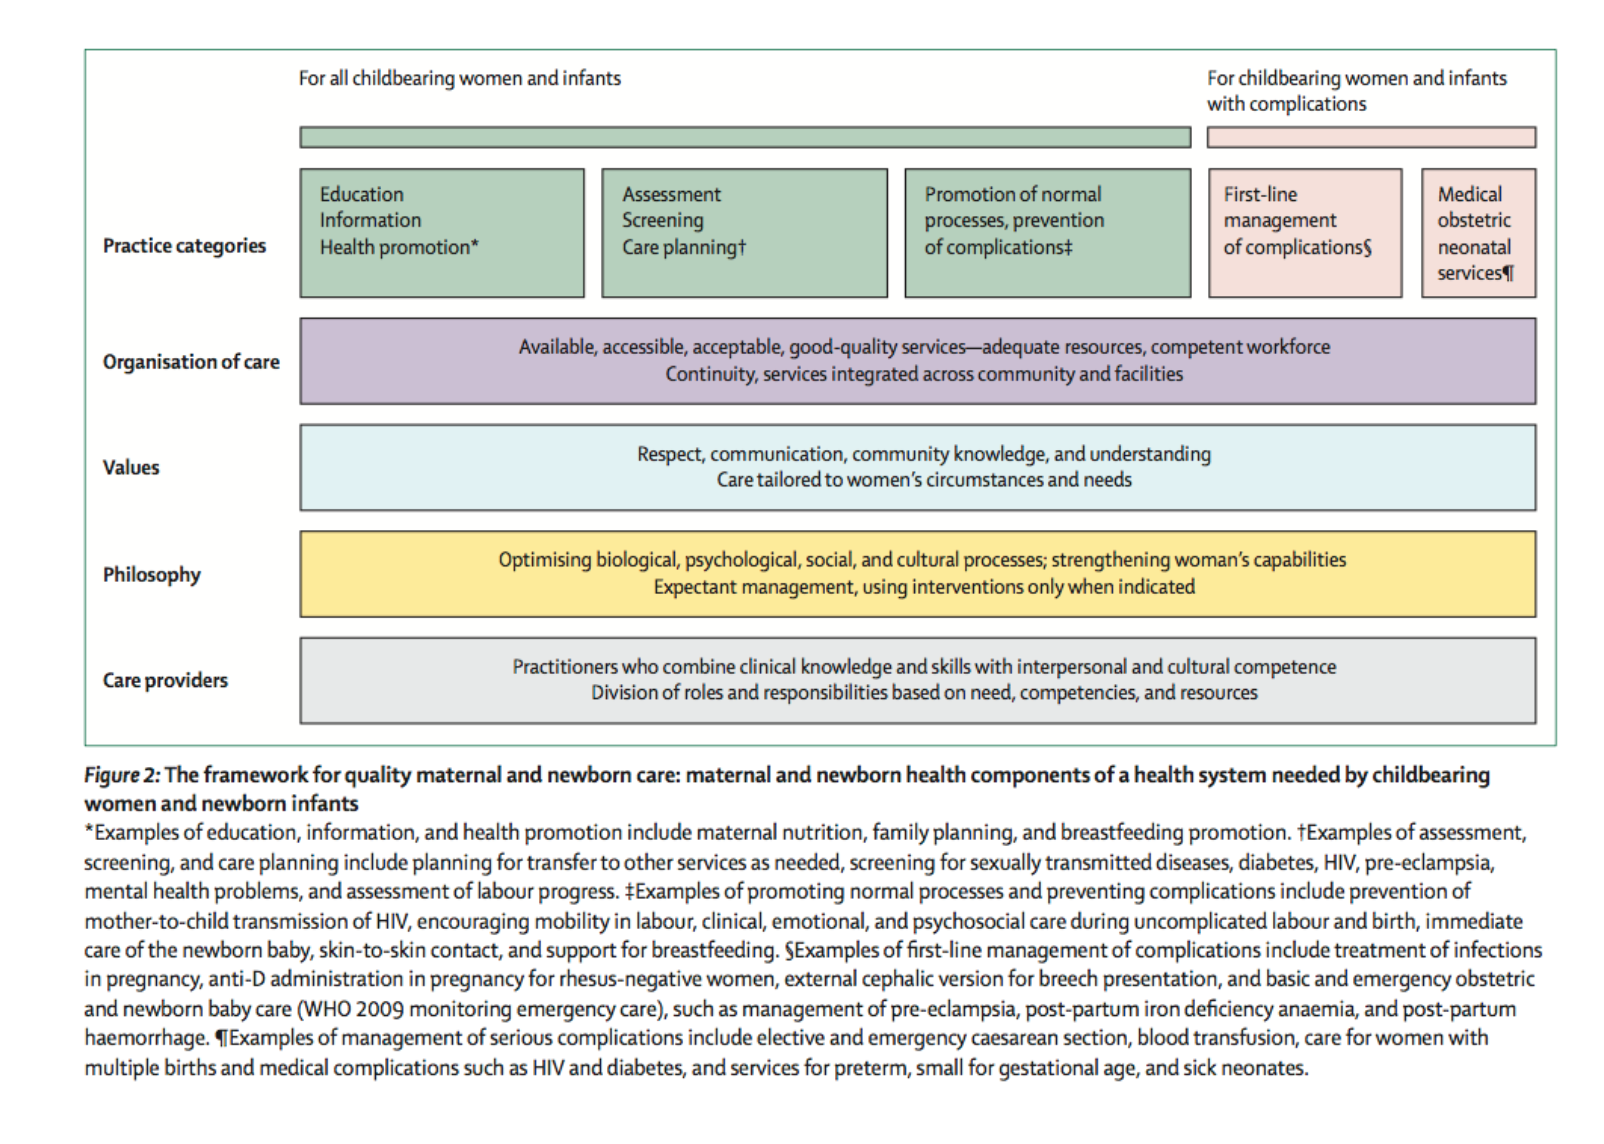 The framework for quality maternal and newborn care